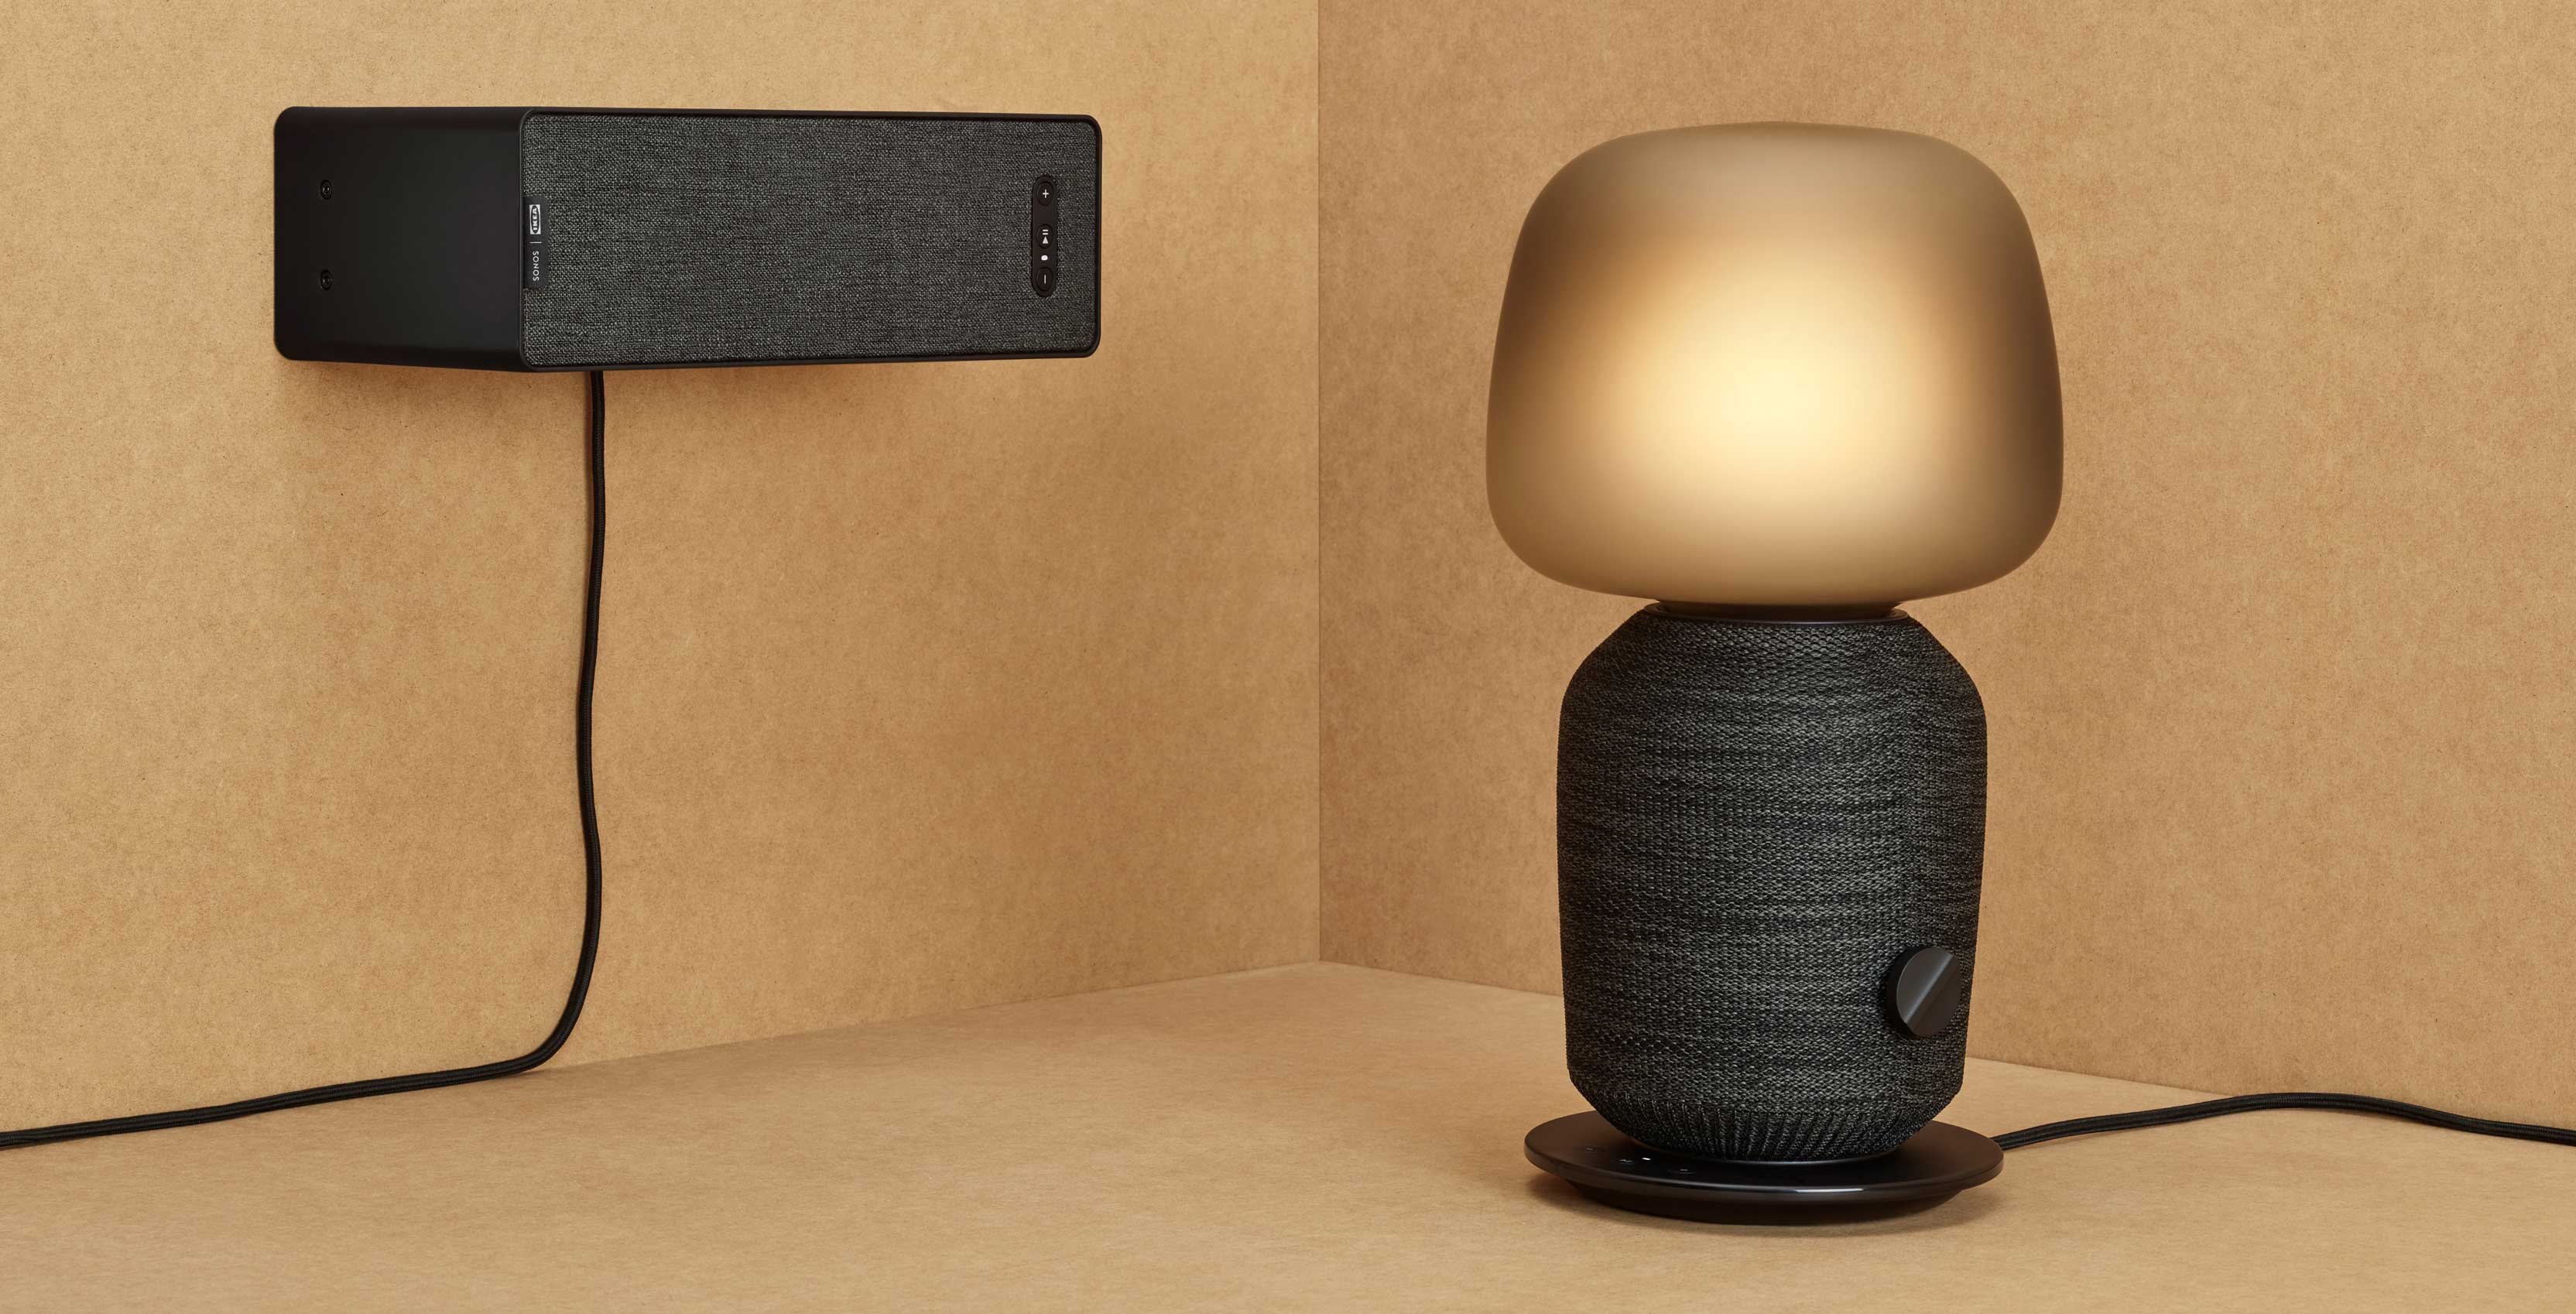 The Ikea Symfonisk range includes a bookshelf and lamp speakers